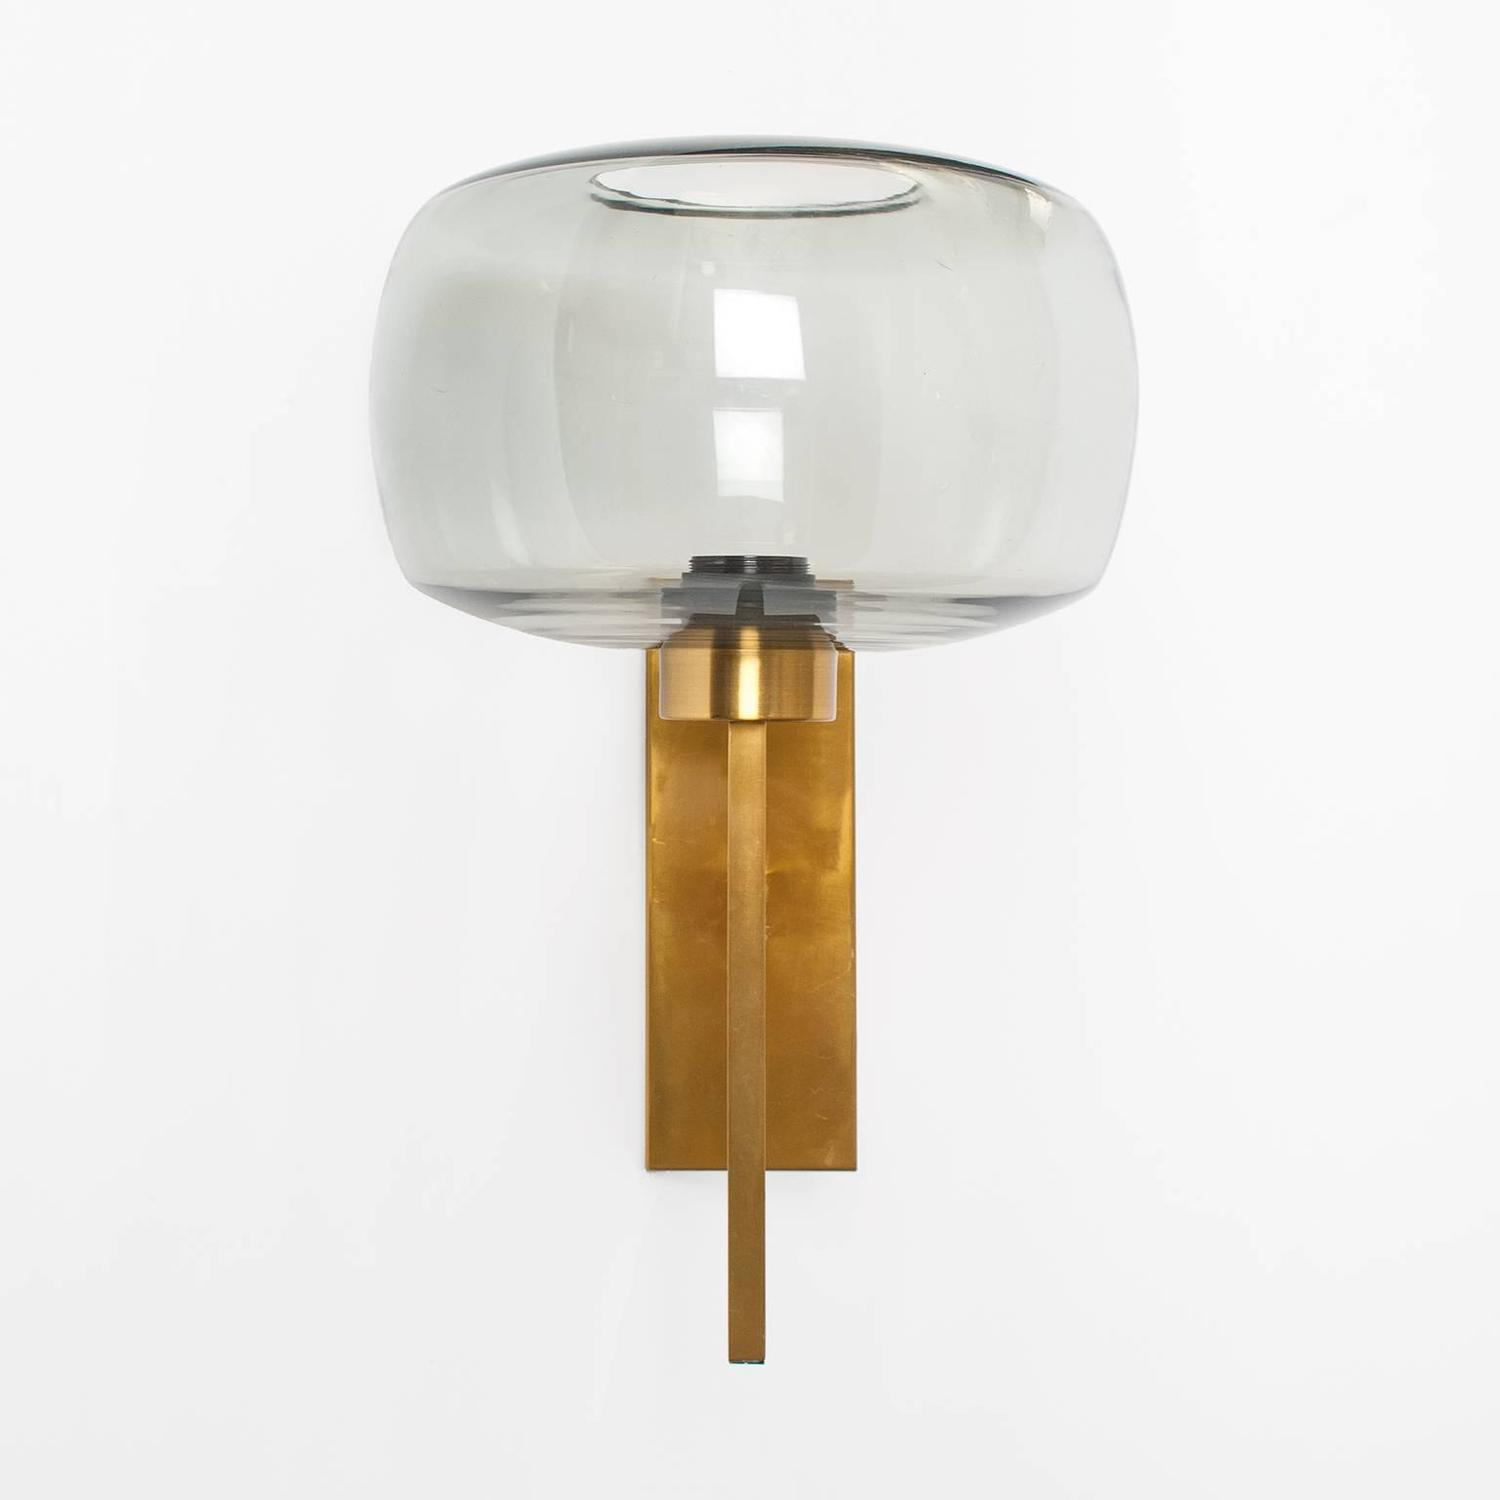 Grey Glass Wall Lights : Pair of Scandinavian Modern Brass Sconces with Gray Glass Shades For Sale at 1stdibs